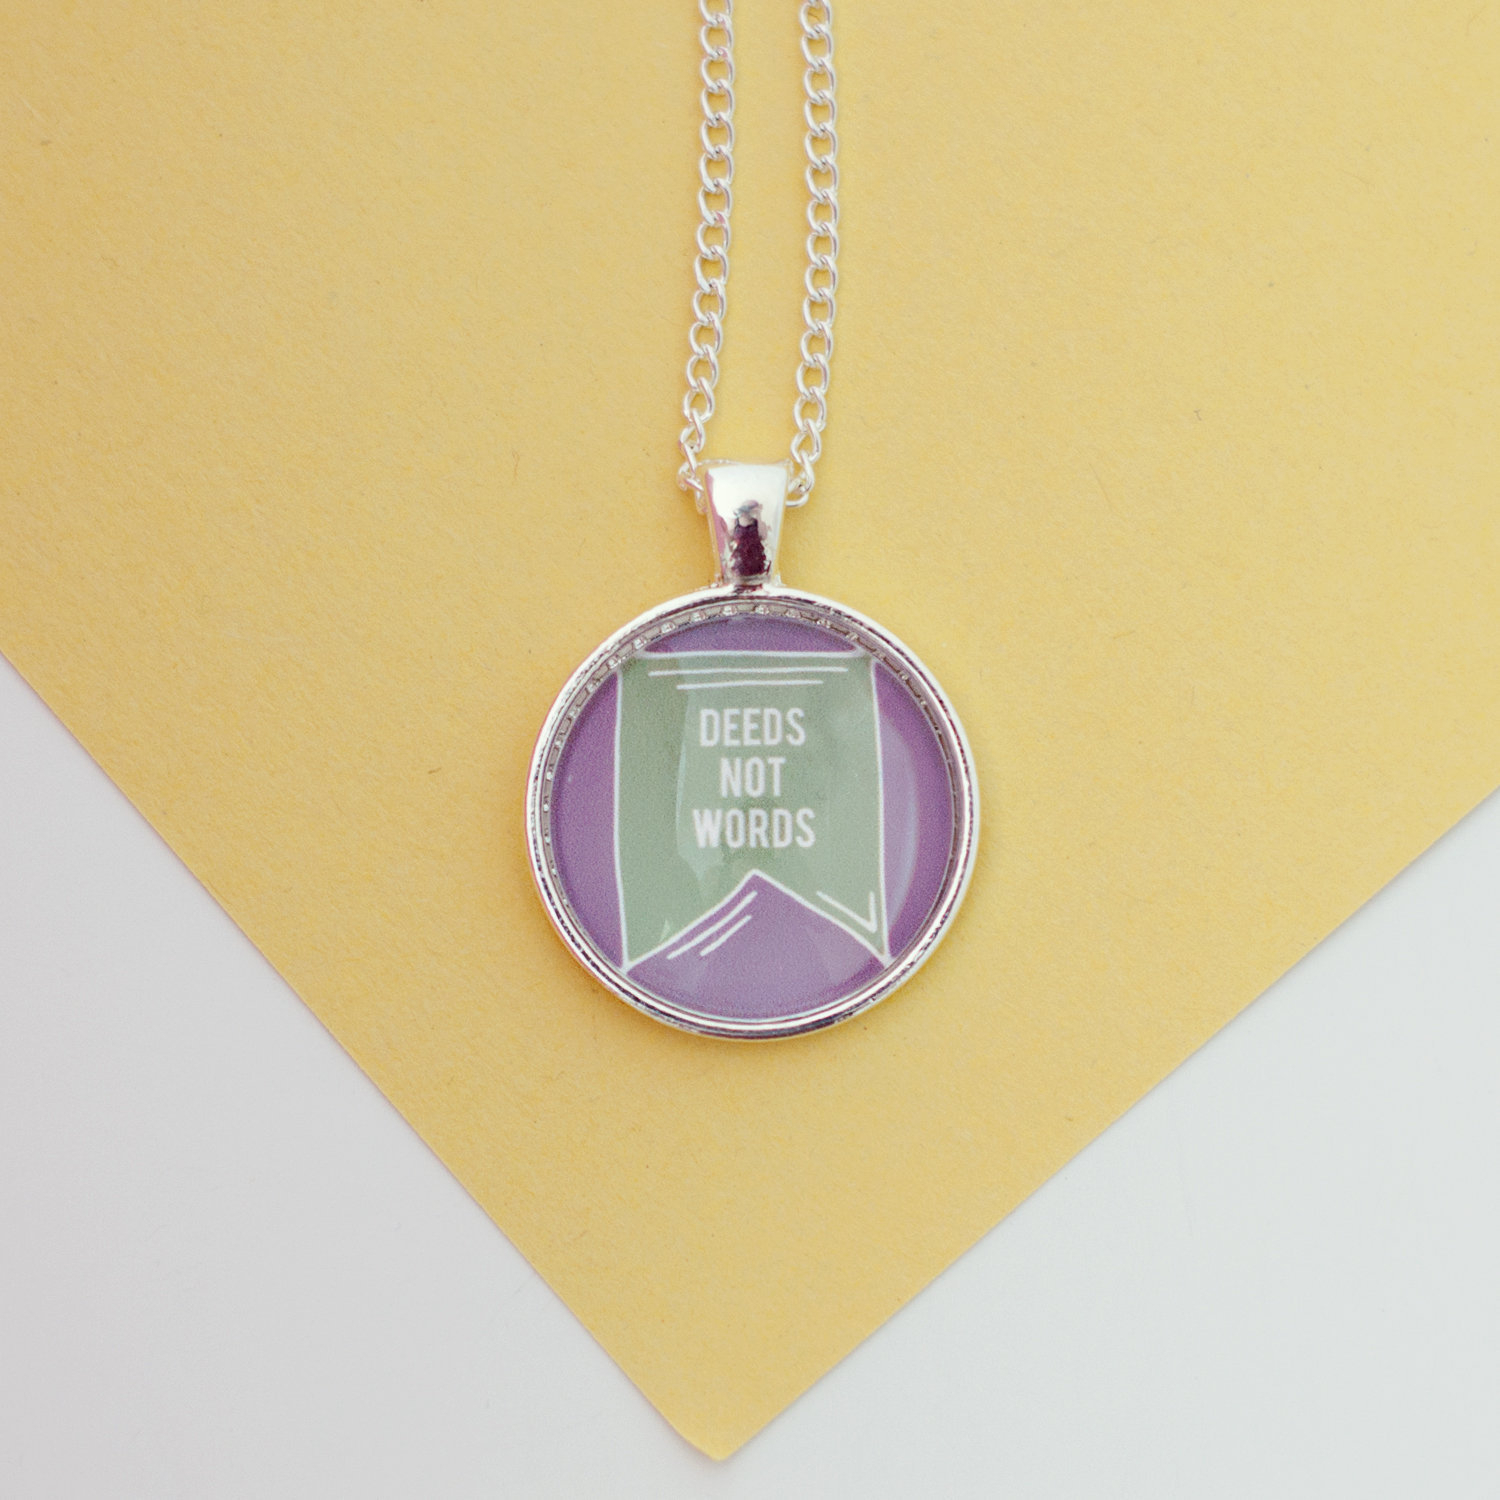 Deeds Not Words Necklace, Suffragettes, Feminist Necklace, Women's Rights Necklace, Feminism Jewellery, Feminism Jewelry, Feminist Jewellery Pertaining To 2020 Female Empowerment Motto Pendant Necklaces (View 18 of 25)